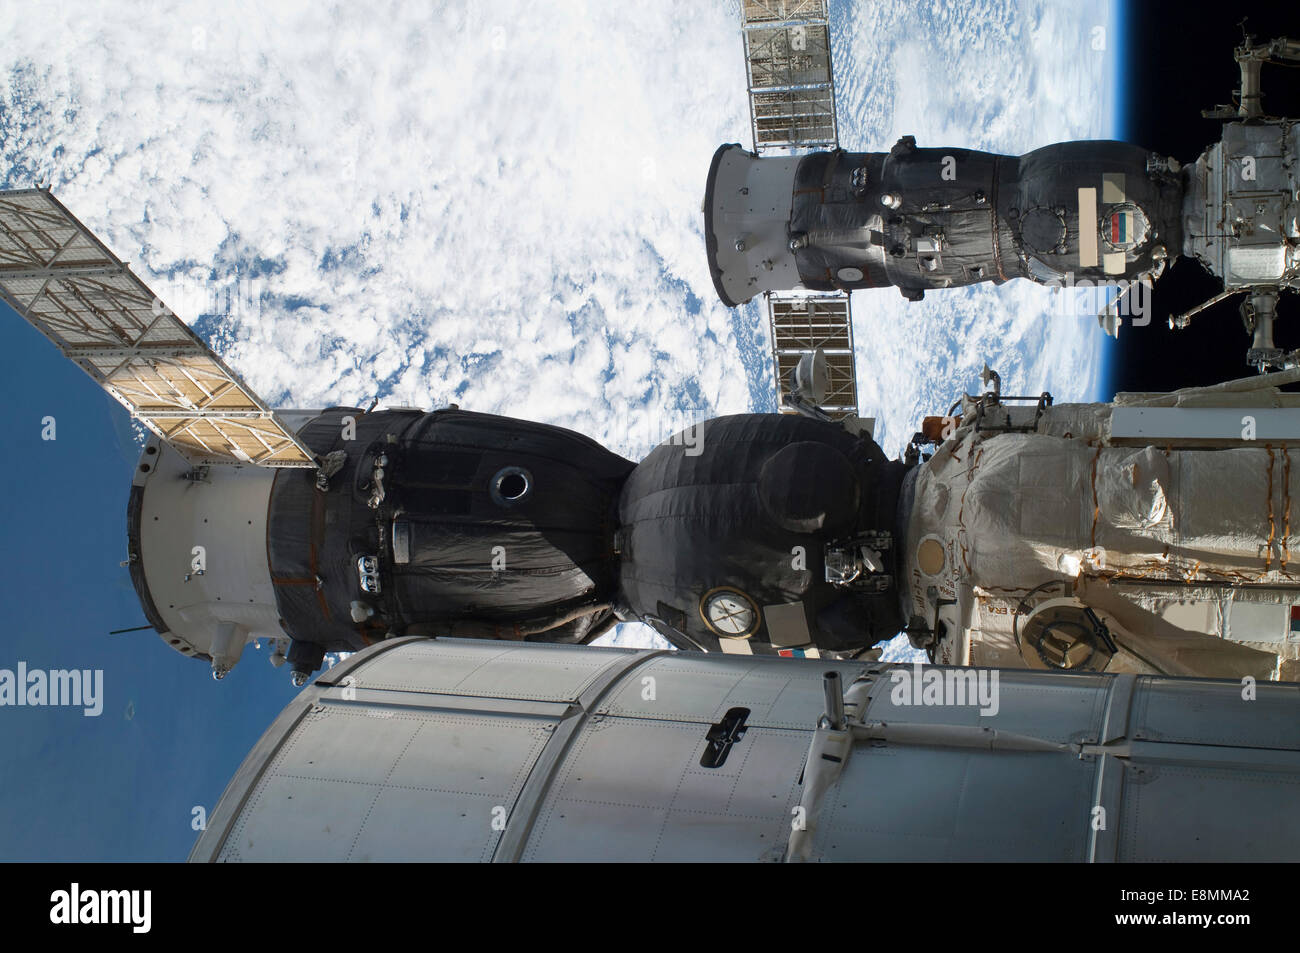 July 12, 2011 - A Russian Soyuz (foreground), and a Russian Progress supply ship (background), are docked to the - Stock Image